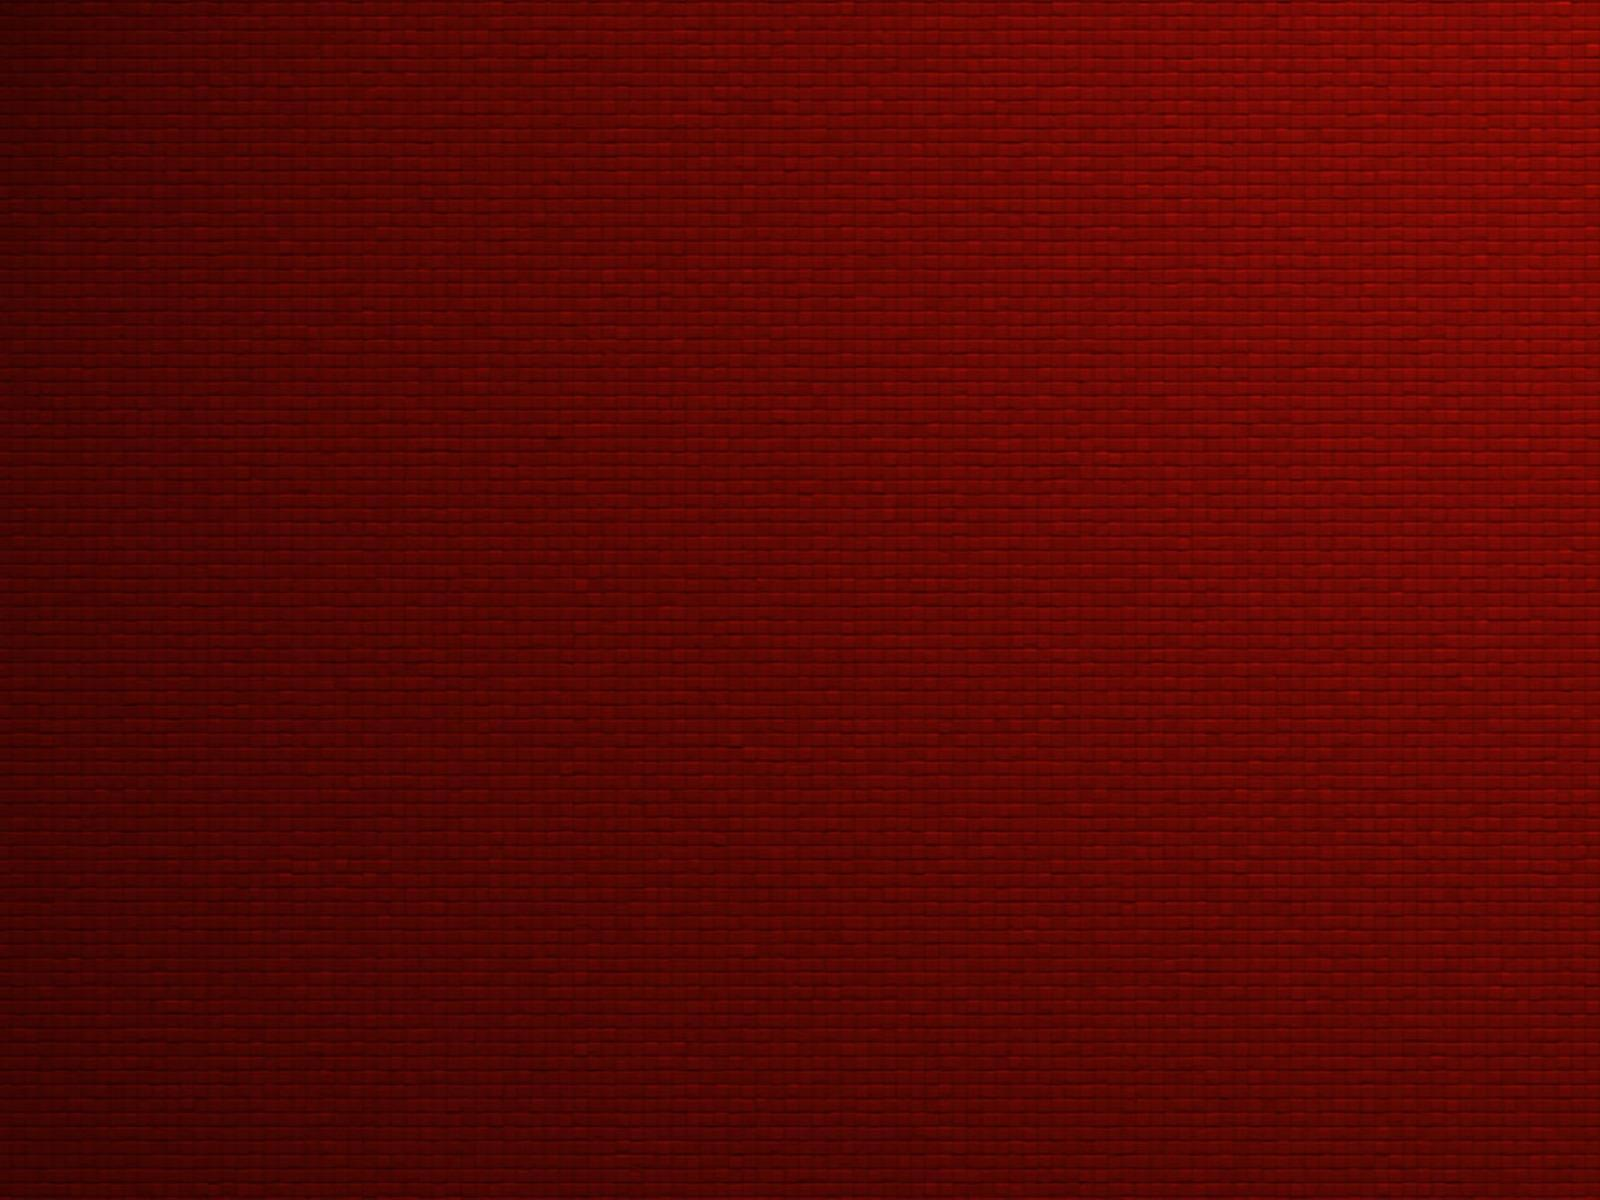 1600x1200 Red Desktop Wallpaper Abstract Red Wallpaper 1600x1200